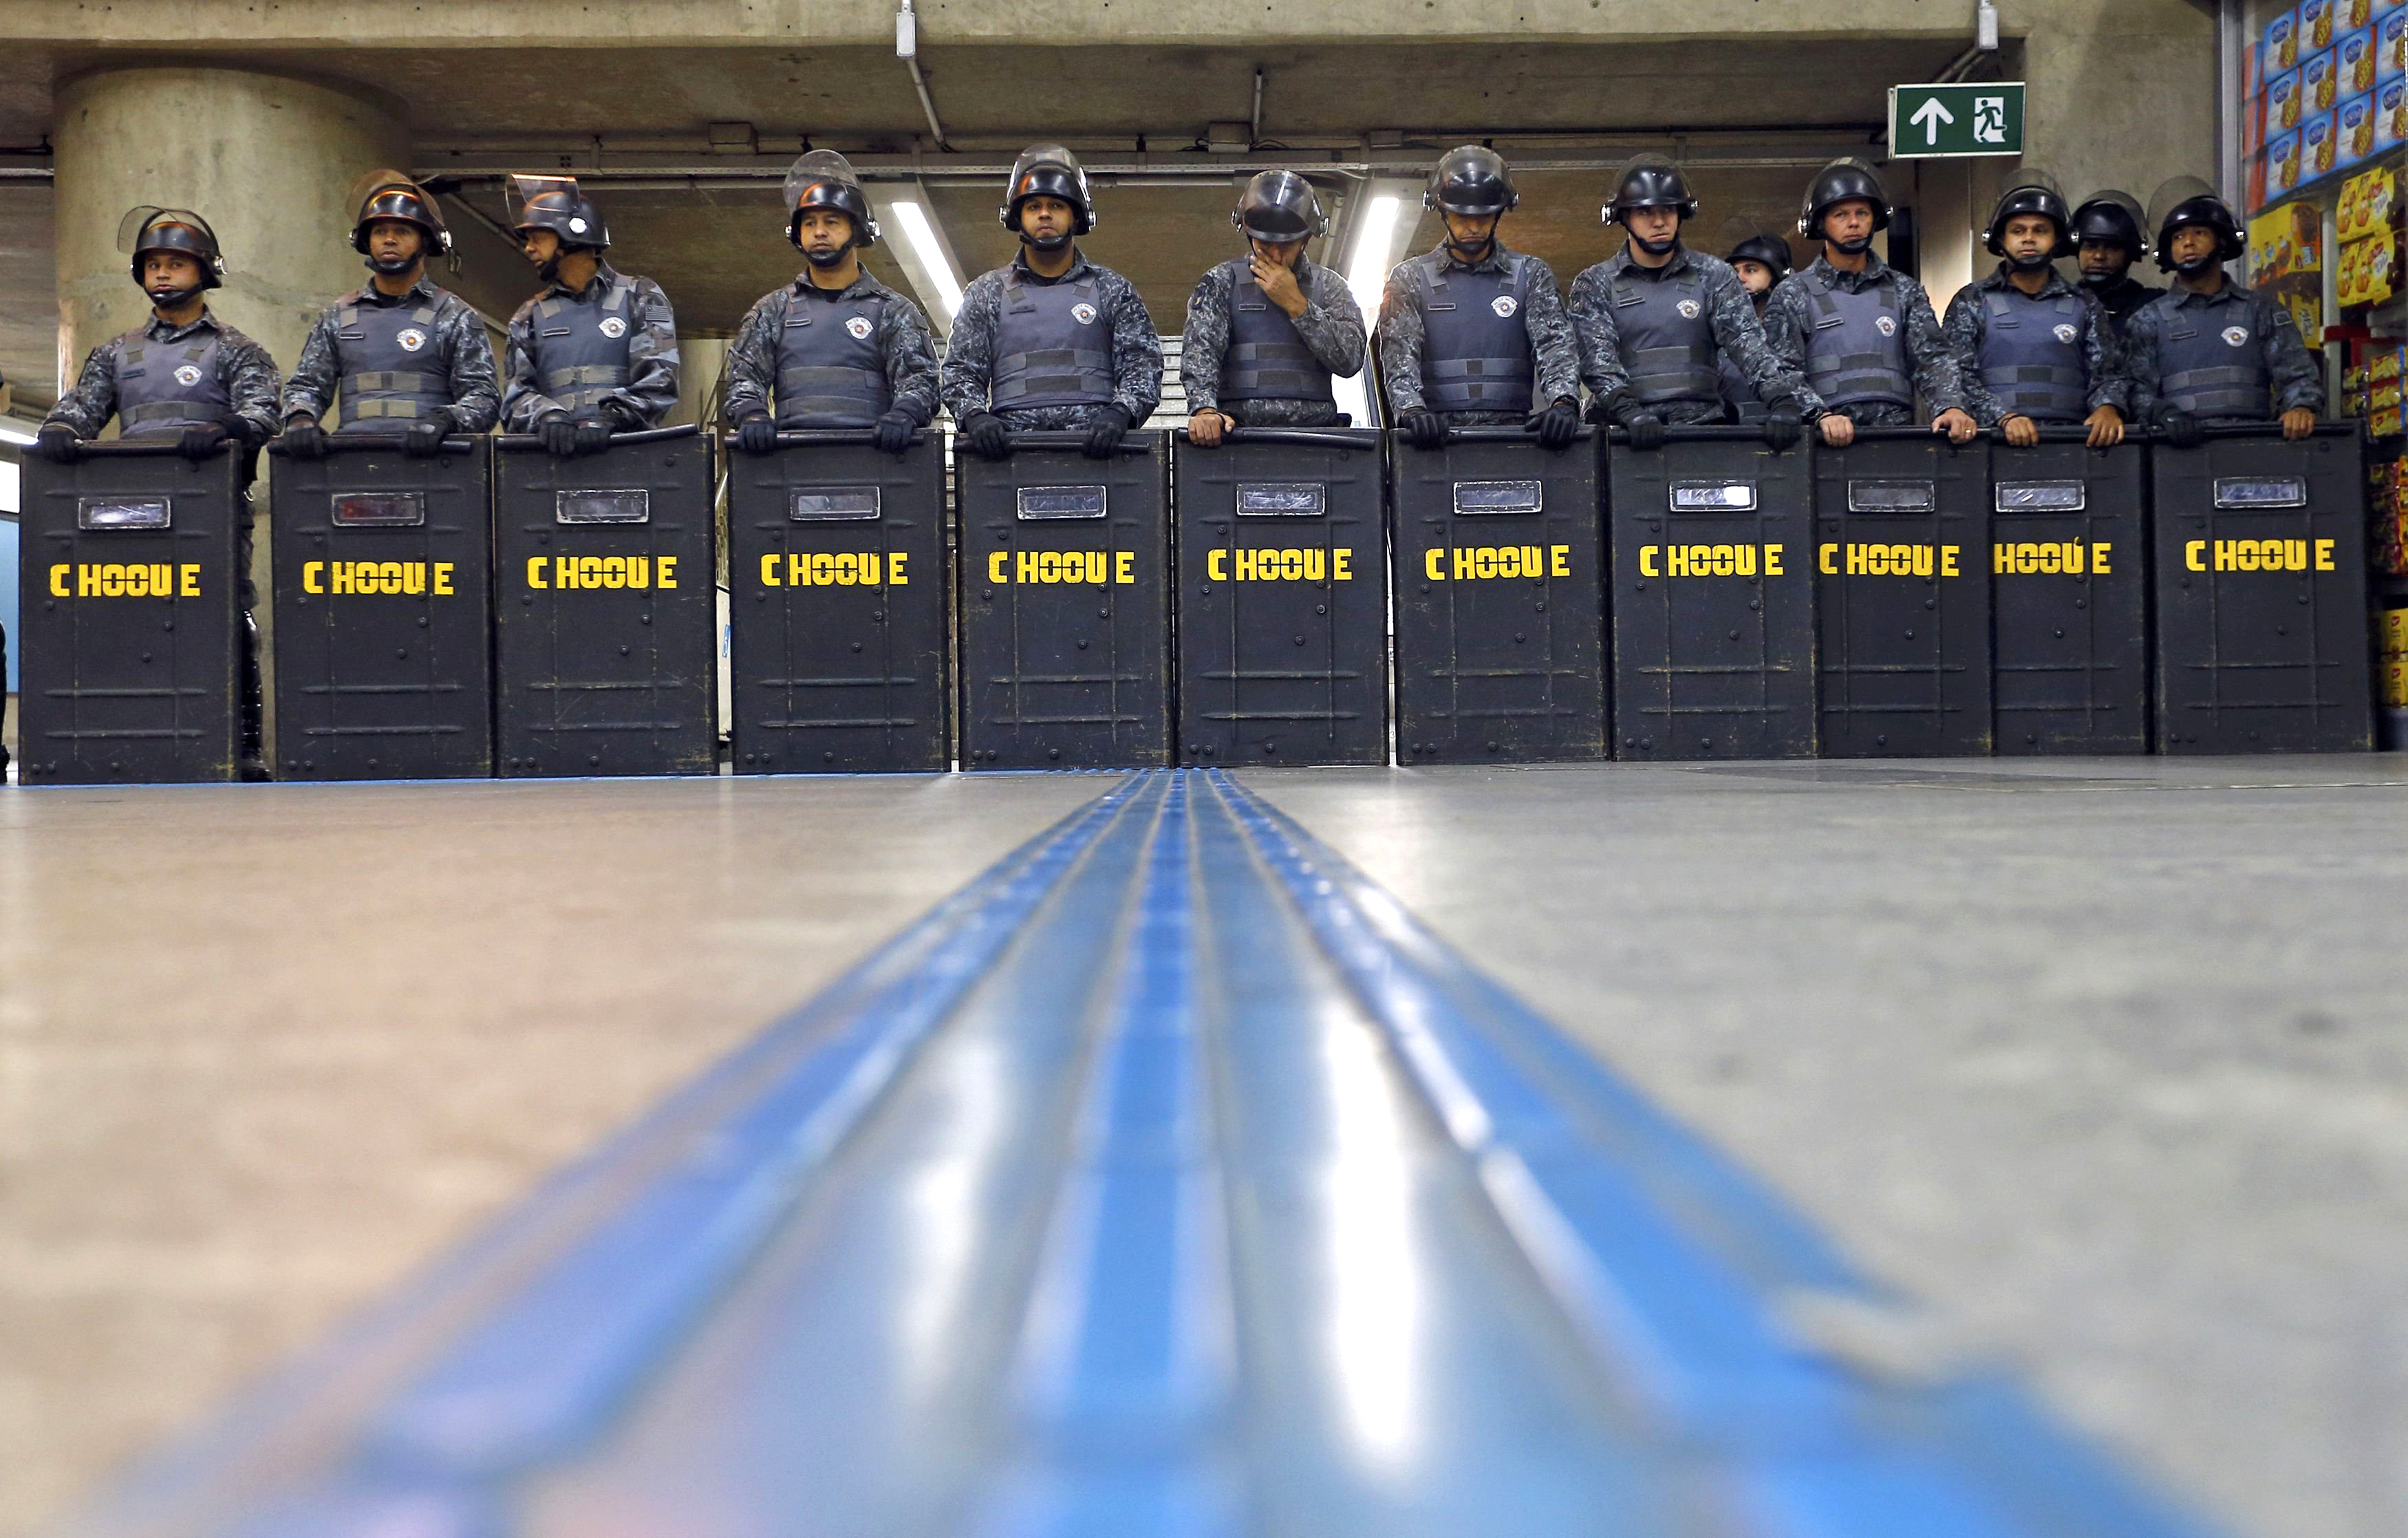 Policemen in riot gear stand inside Ana Rosa subway station during the fifth day of metro worker's protest in Sao Paulo on June 9, 2014.